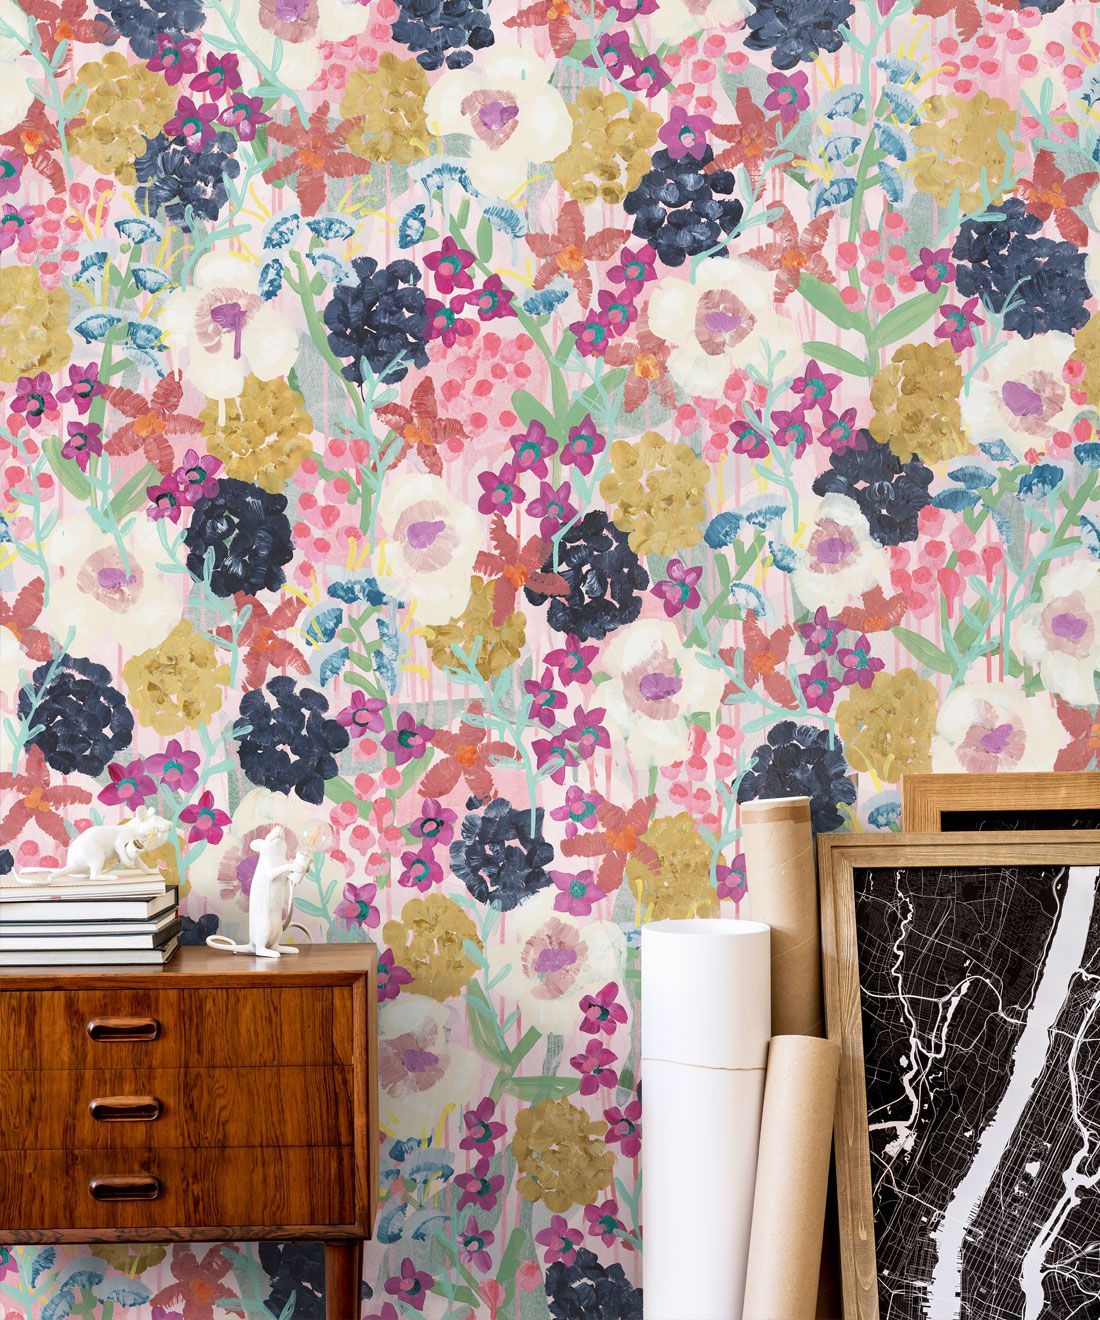 Garden State Wallpaper •Colourful Floral Wallpaper • Tiff Manuell • Abstract Expressionist Wallpaper • Close Up Insitu